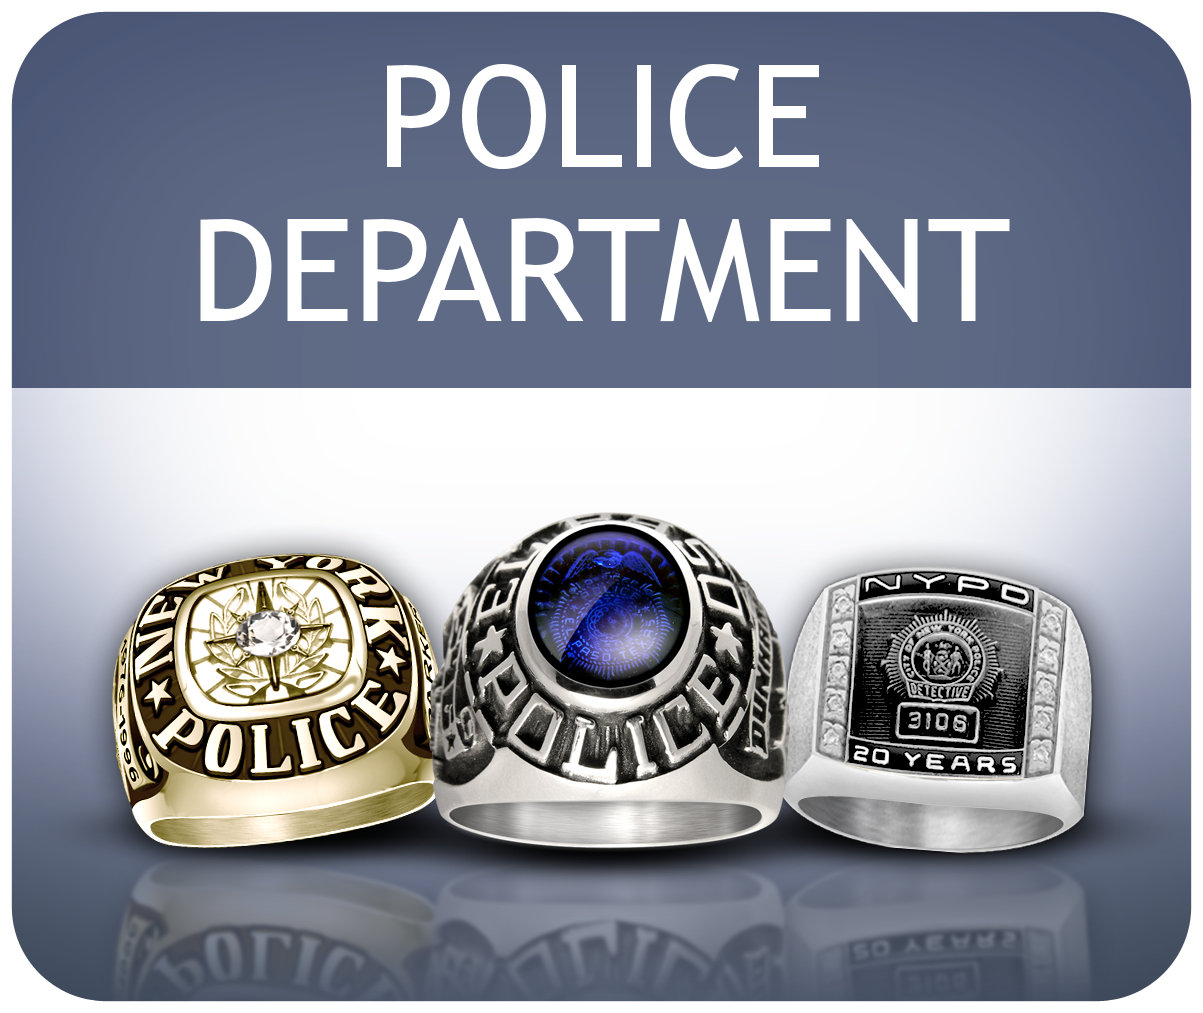 Police Department Rings